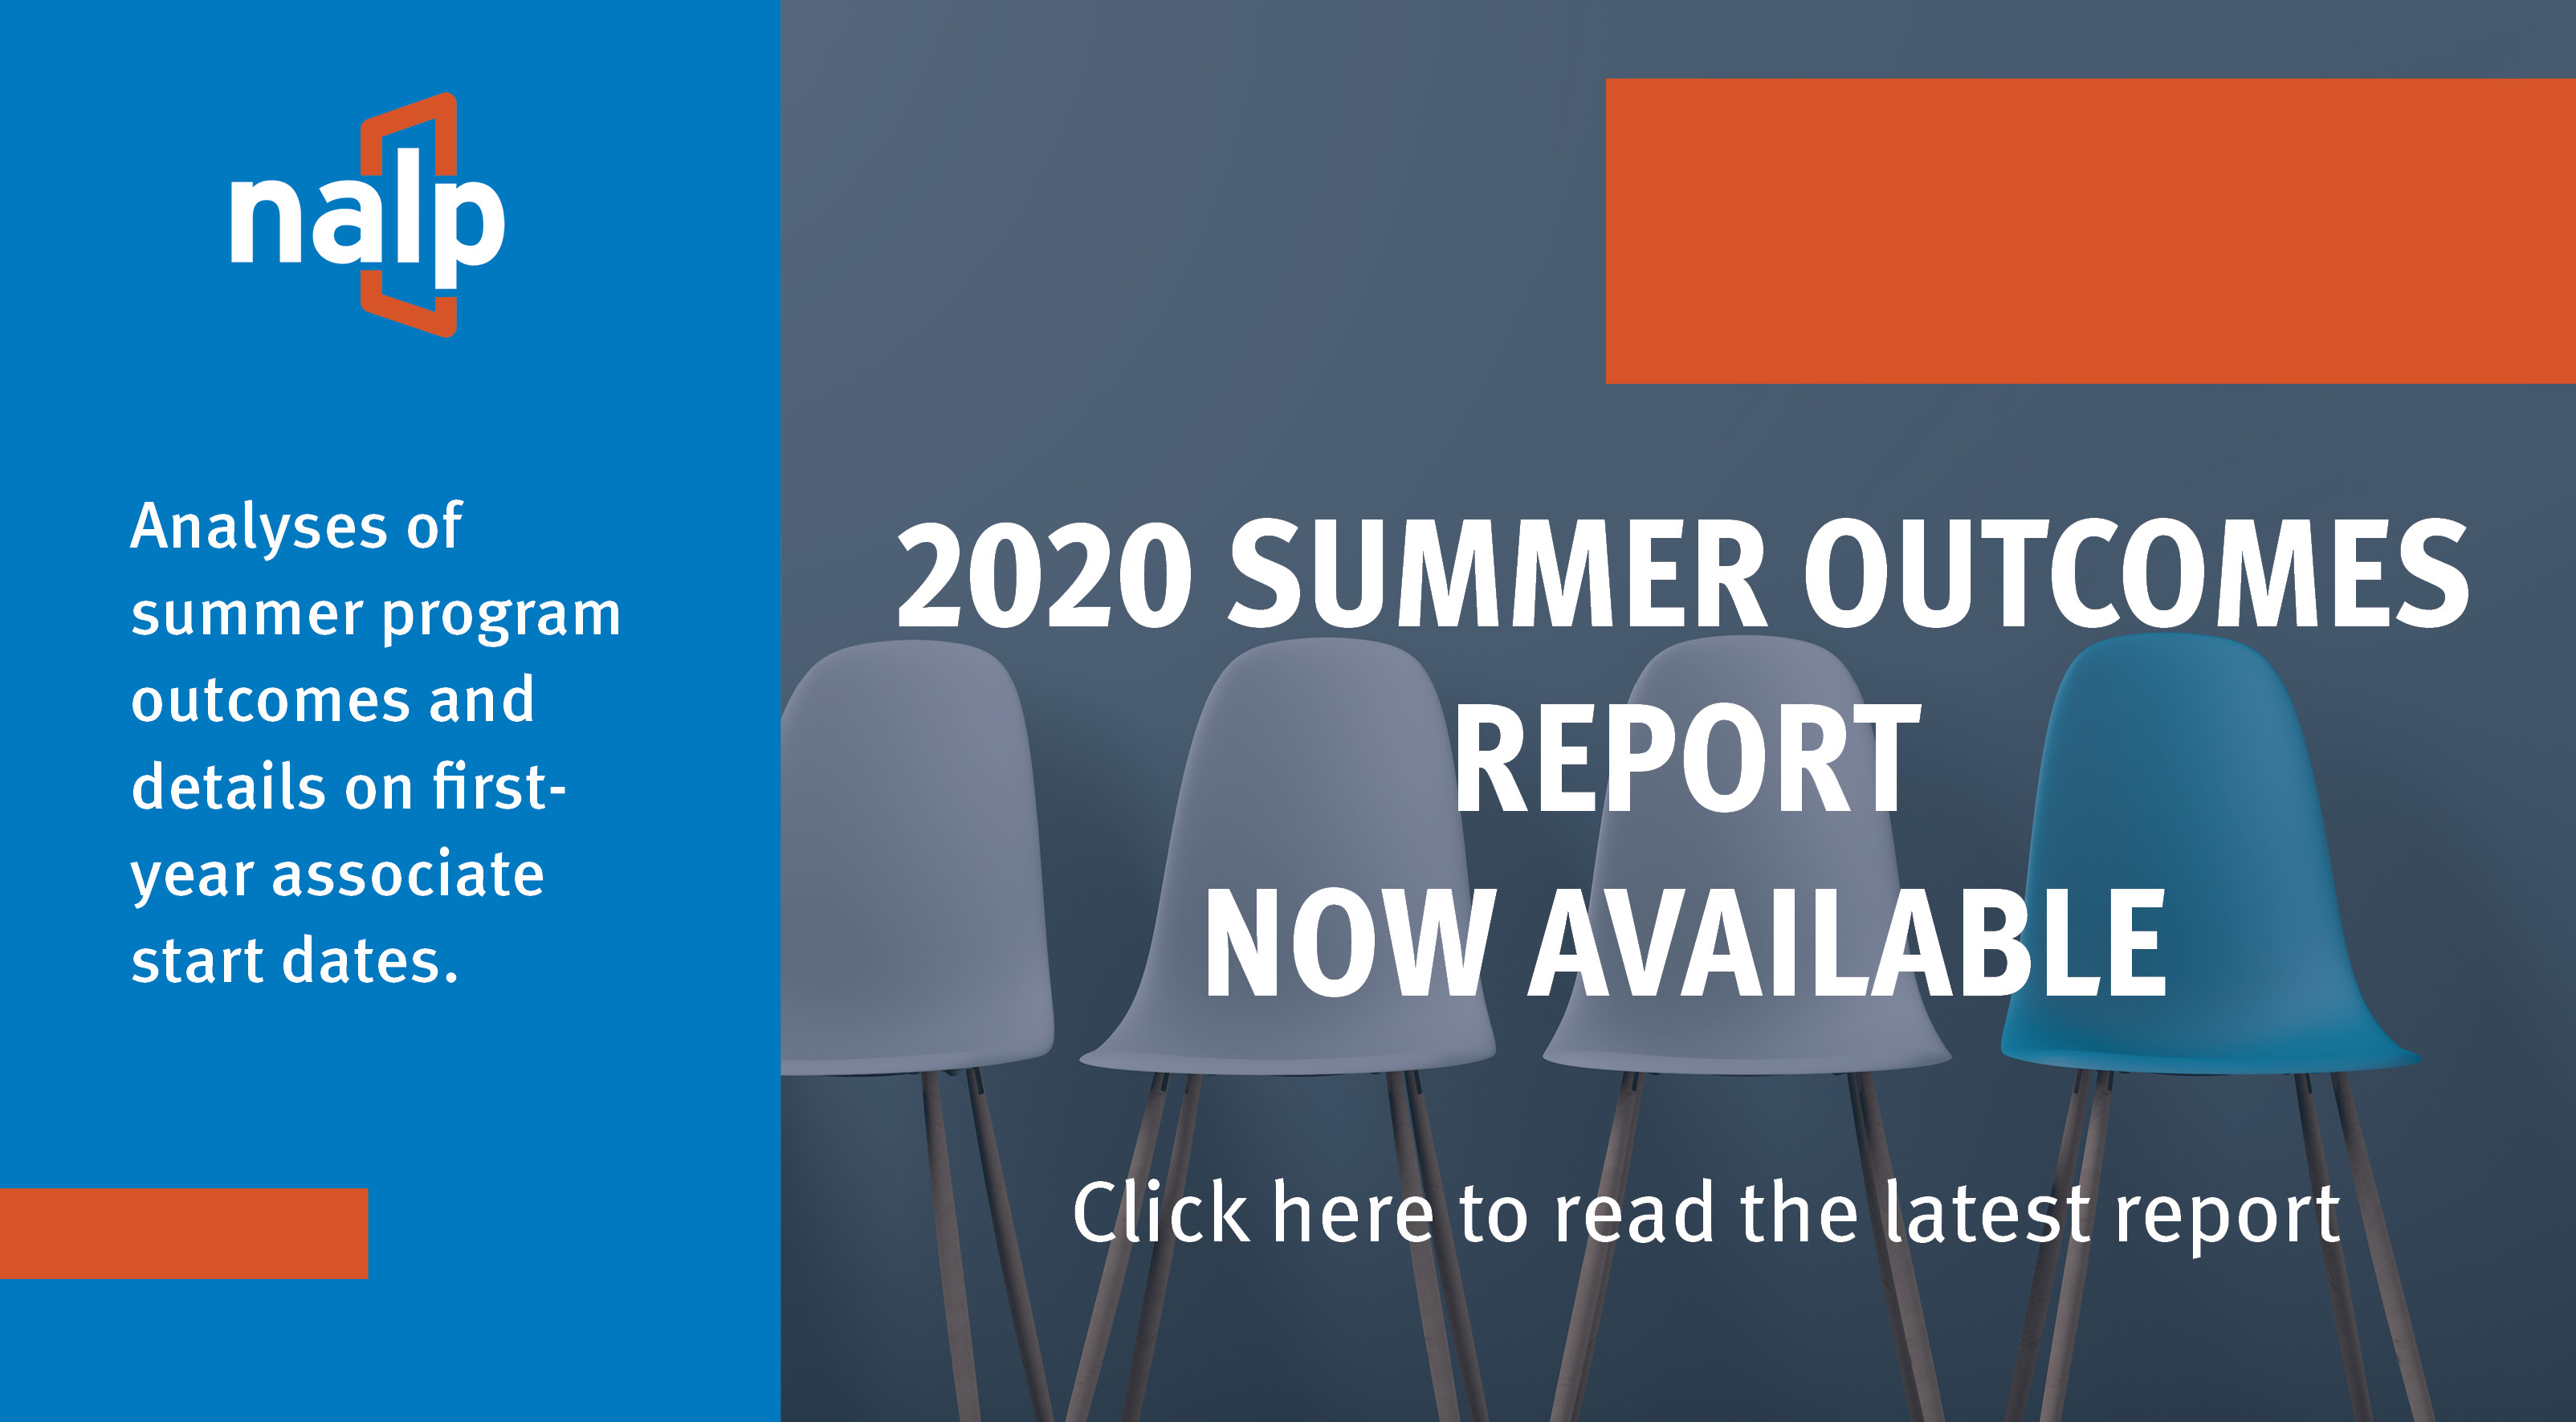 2020 Summer Outcomes Report